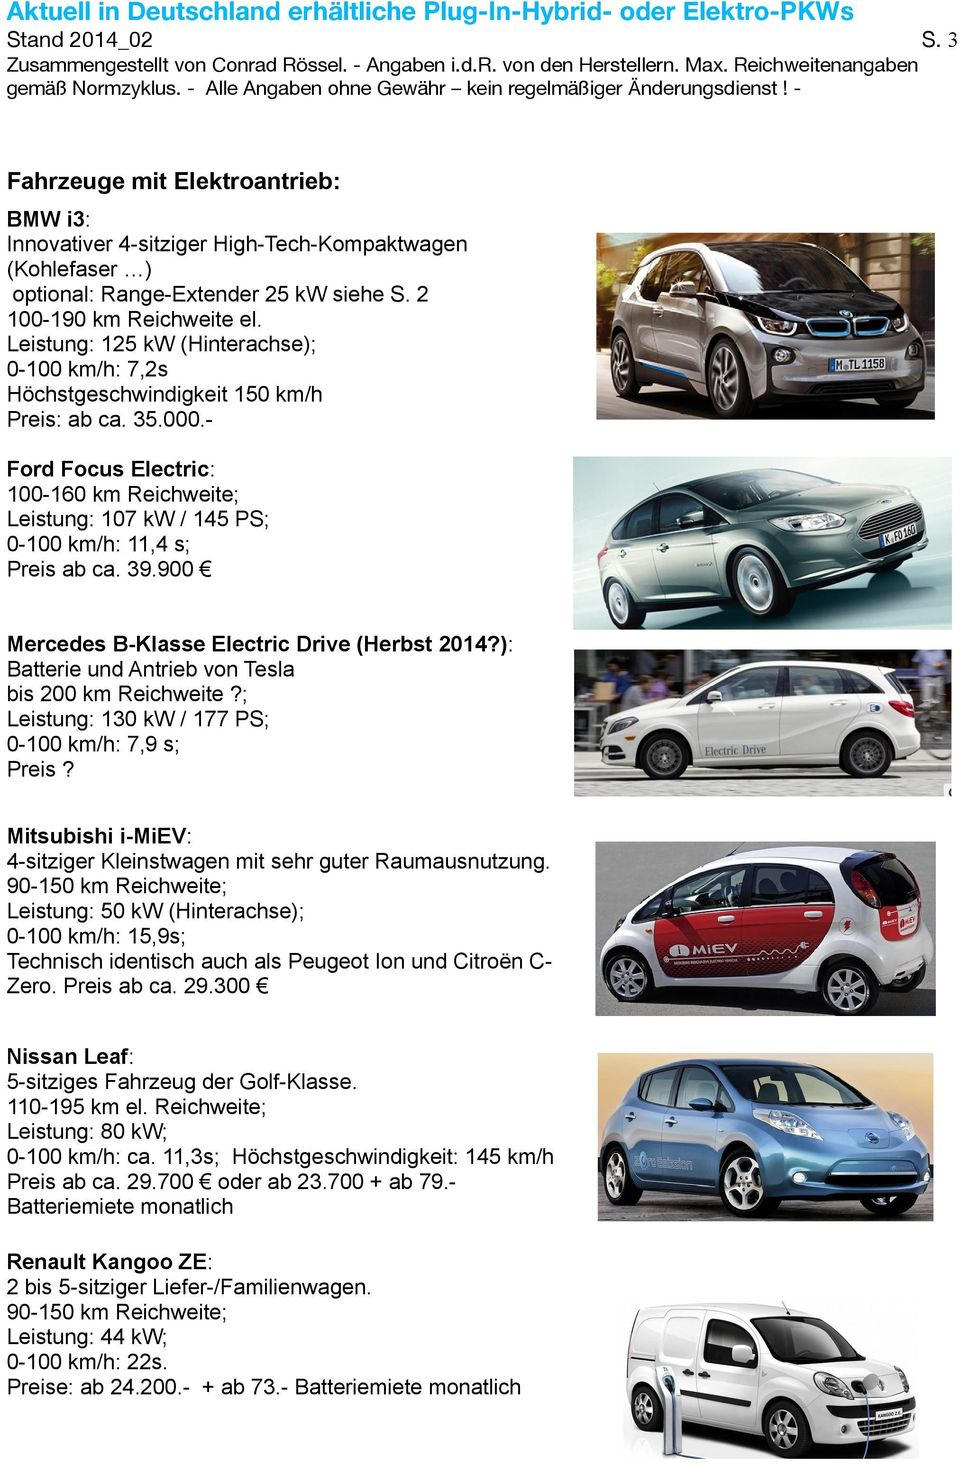 Ford Focus Electric: 100-160 km Reichweite; Leistung: 107 kw / 145 PS; 0-100 km/h: 11,4 s; Preis ab ca. 39.900 Mercedes B-Klasse Electric Drive (Herbst 2014?